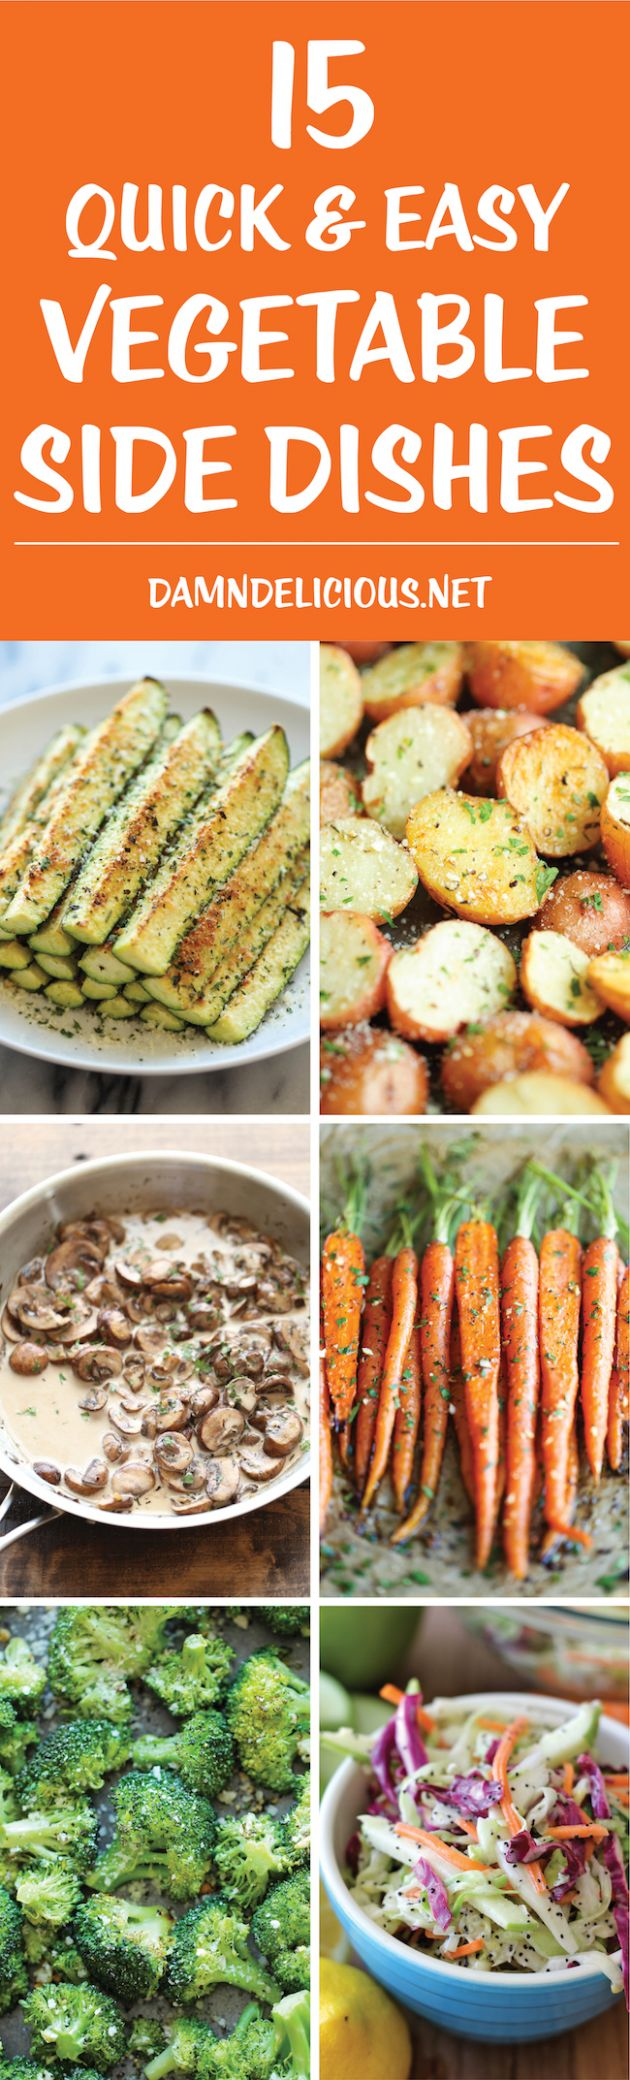 9 Quick and Easy Vegetable Side Dishes - Damn Delicious